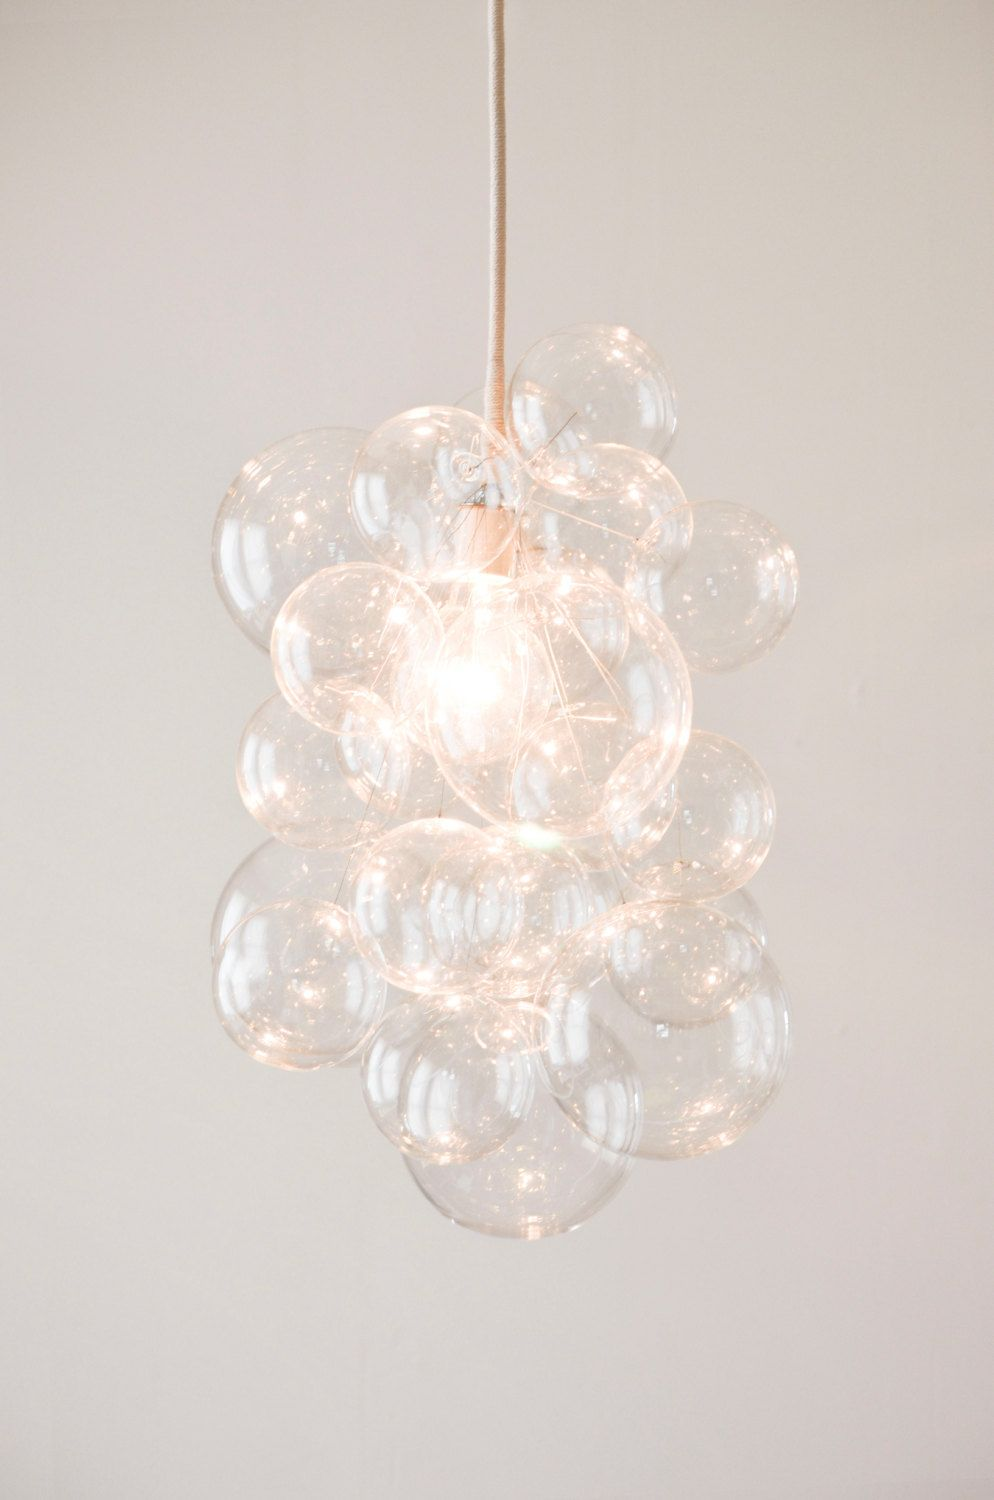 Diy bubble chandelier chandeliers lights and room instructions to make a bubble chandelier arubaitofo Images